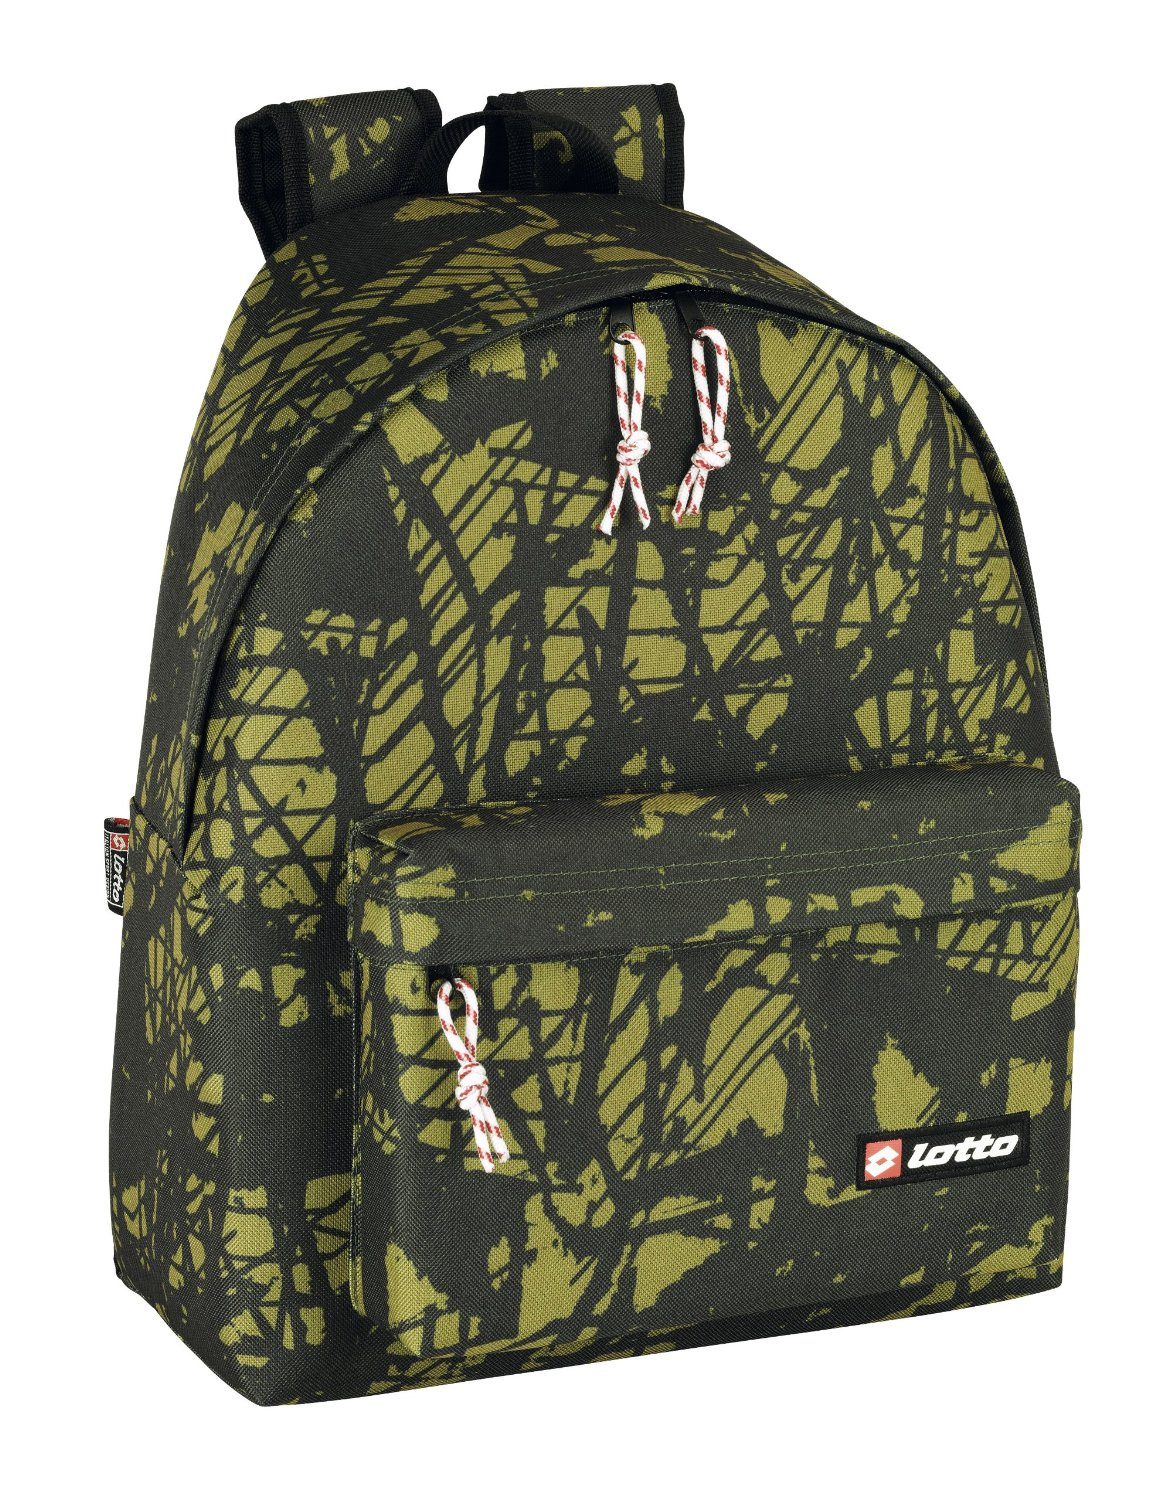 MOCHILA LOTTO CAMUFLAJE COLOR KAKI